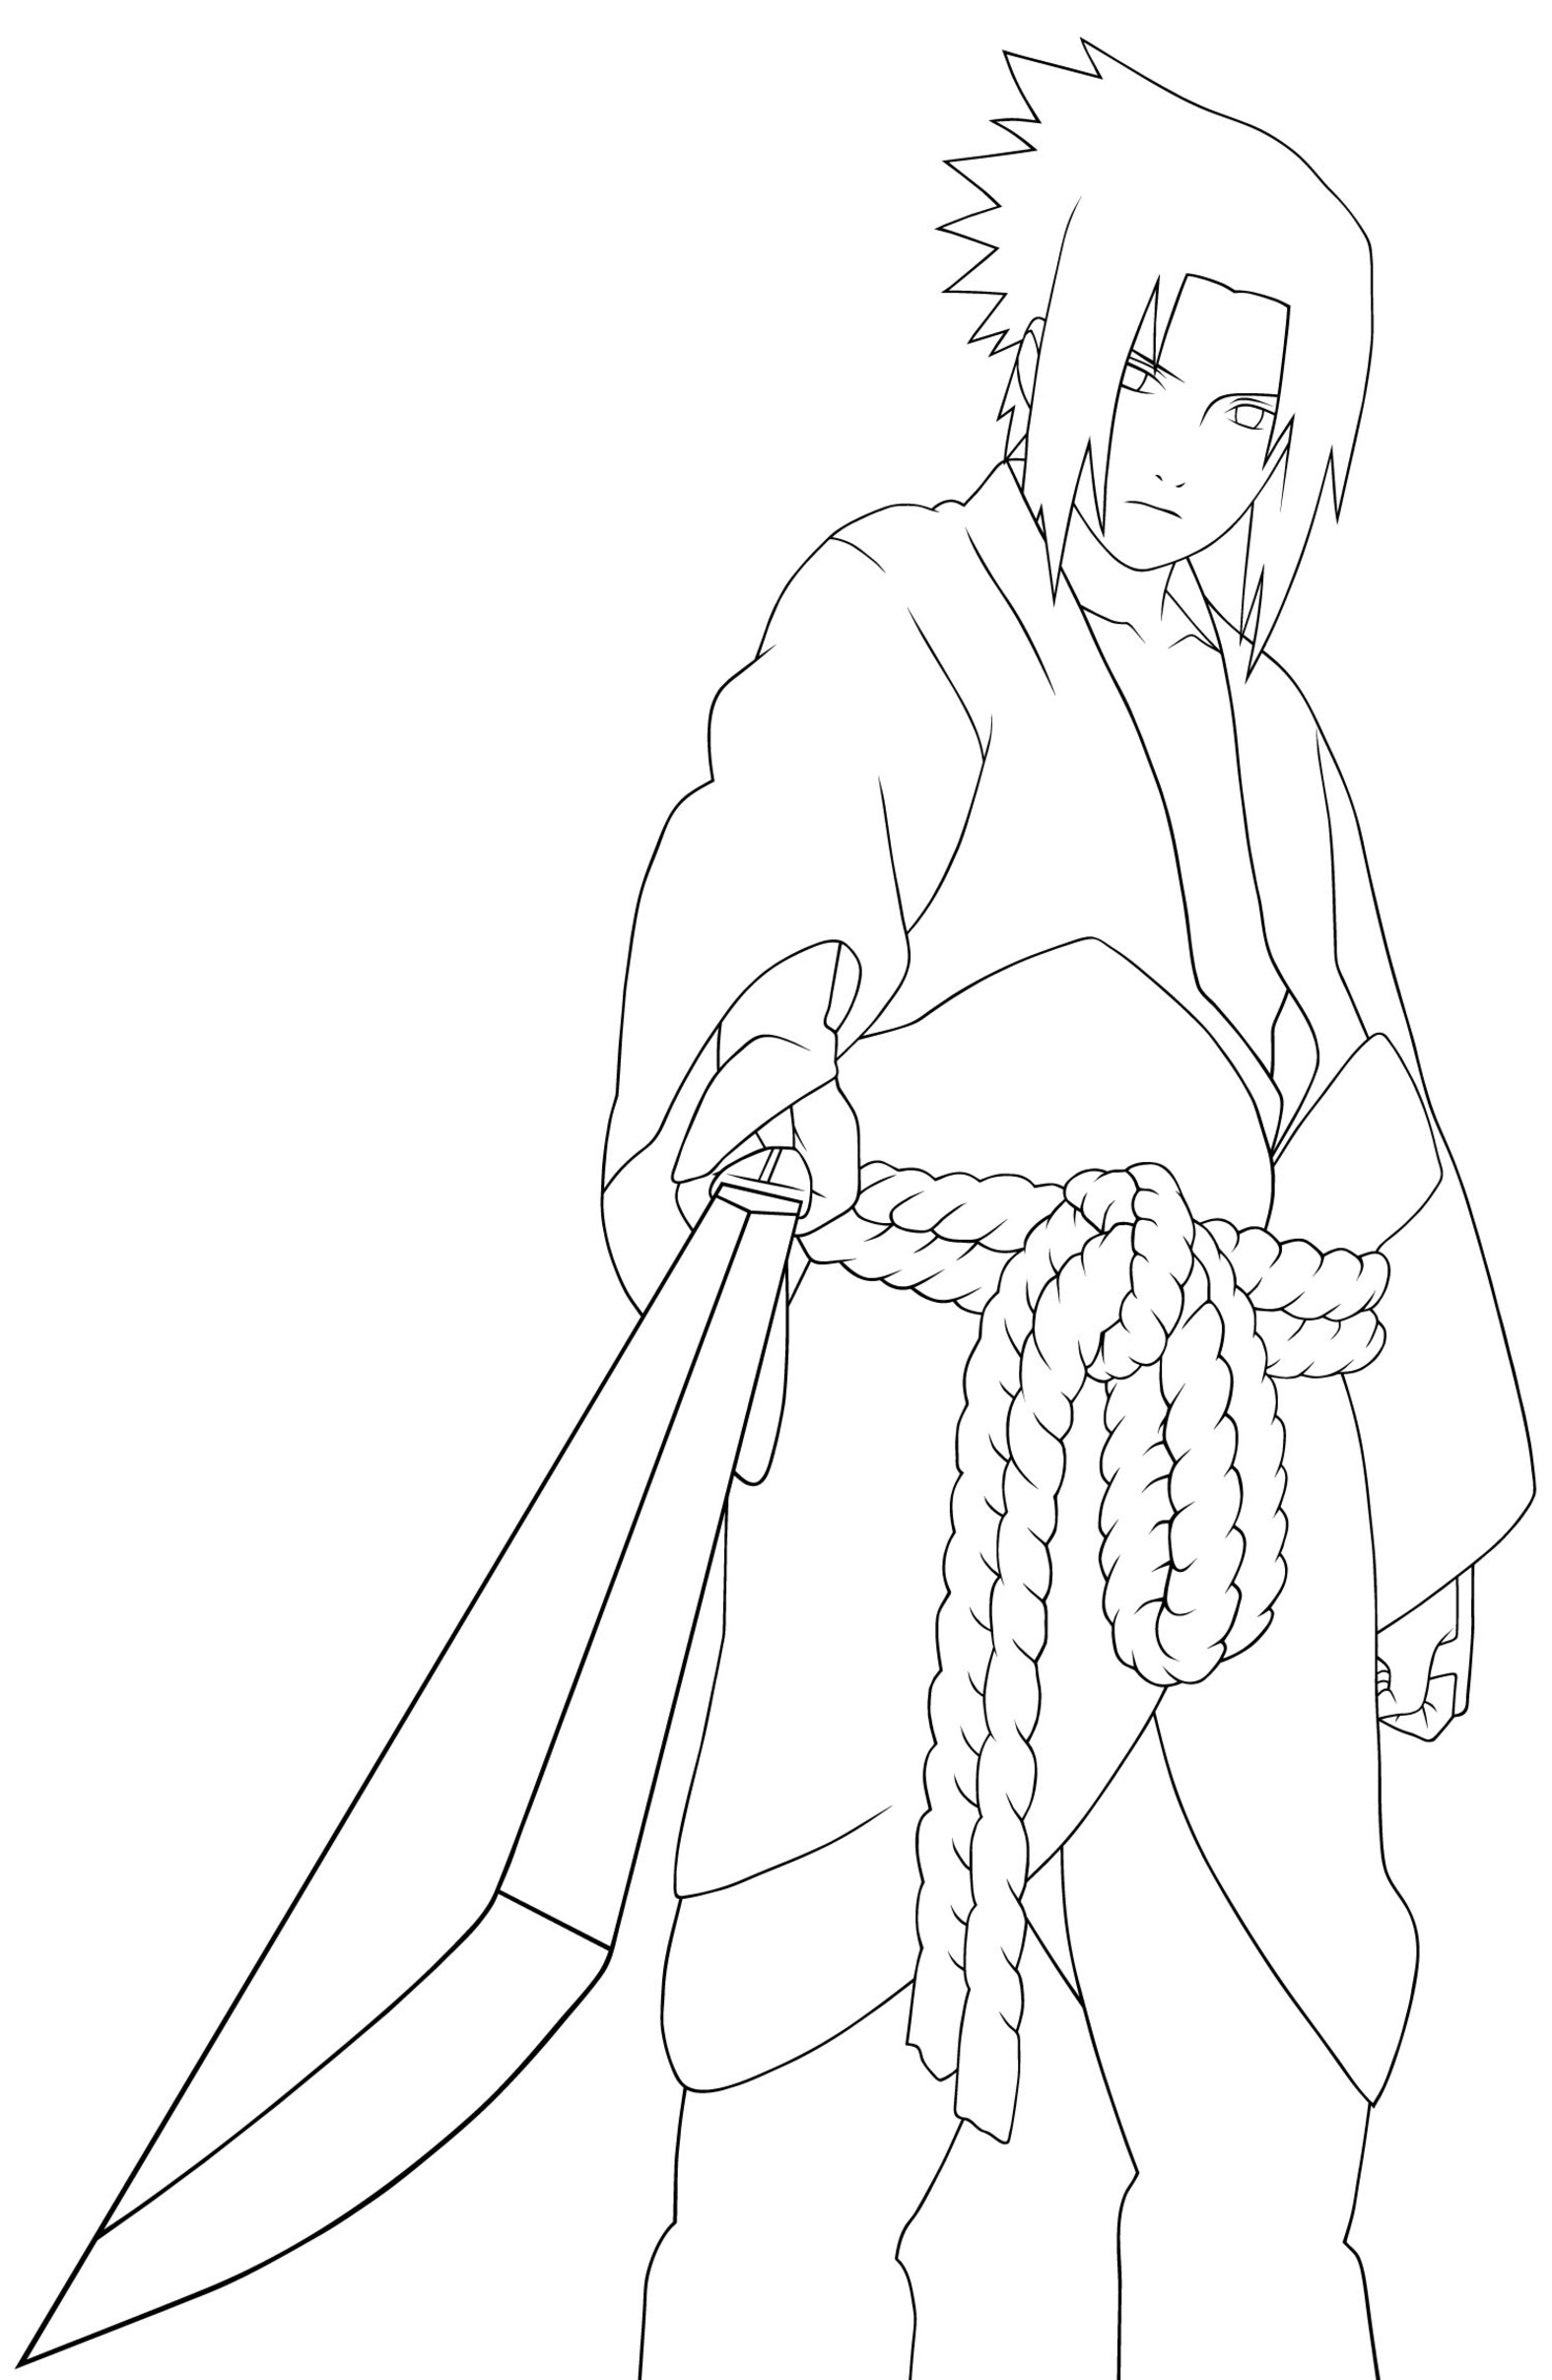 Anime Naruto Coloring Pages Naruto Shippuden Printable Free Coloring Pages On Art Coloring Pages